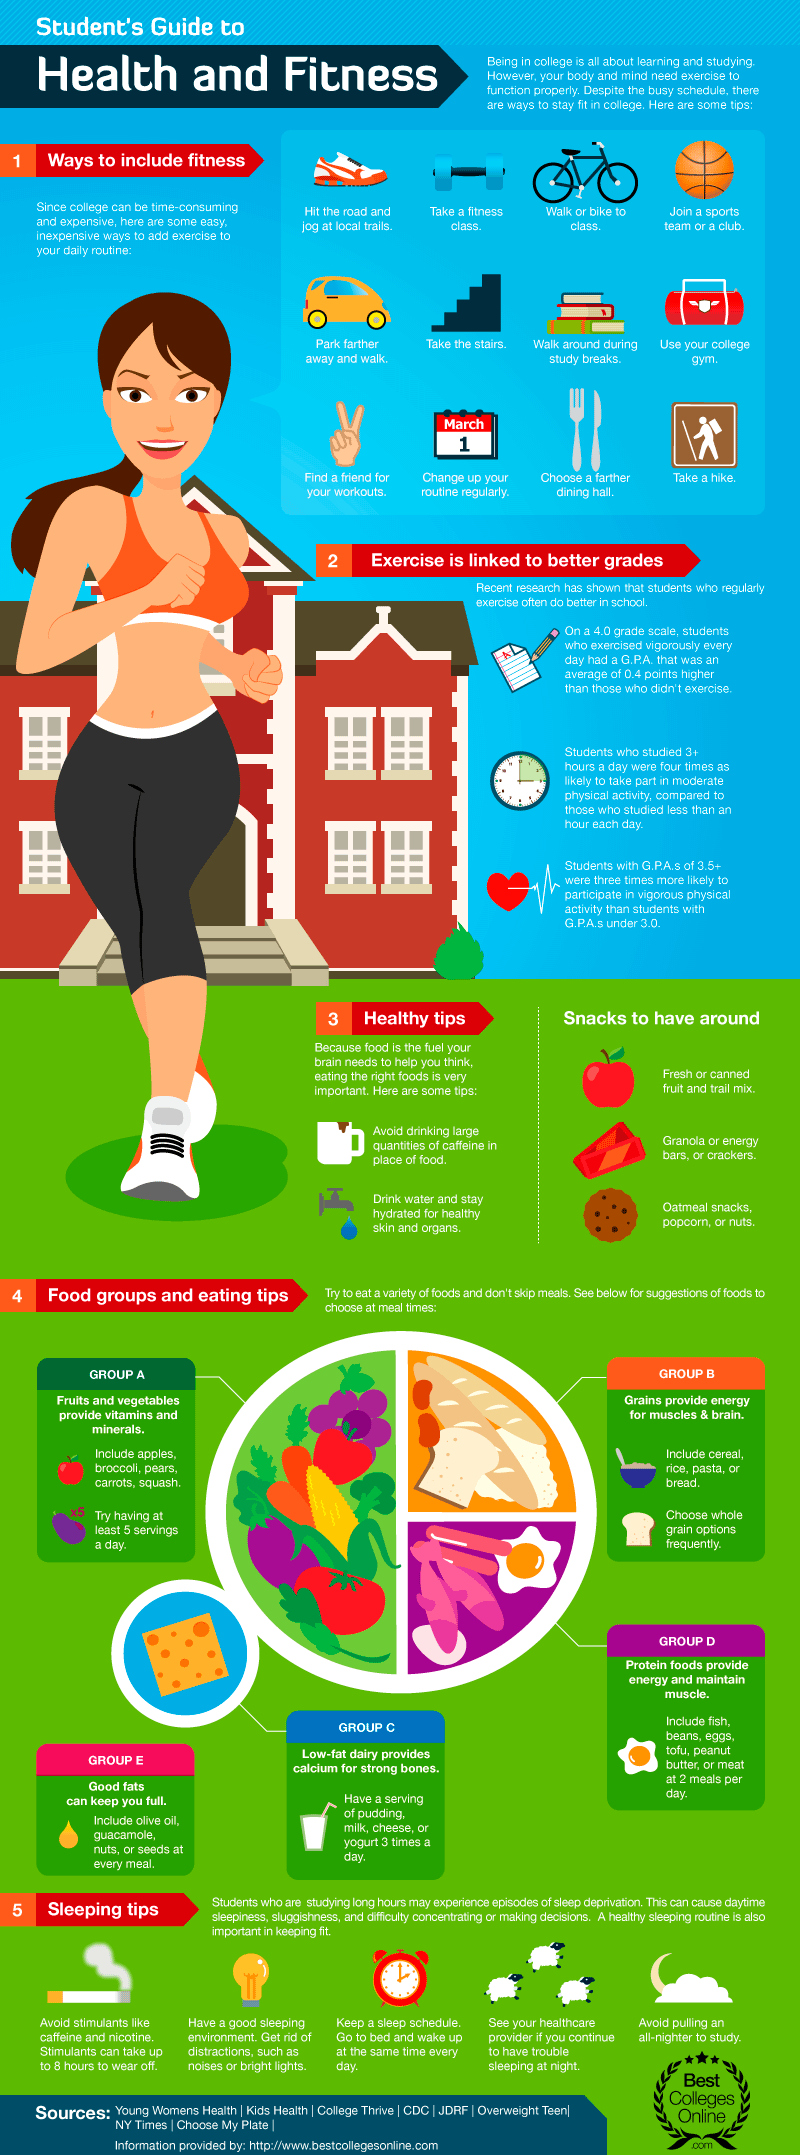 students-guide-to-health-and-fitness